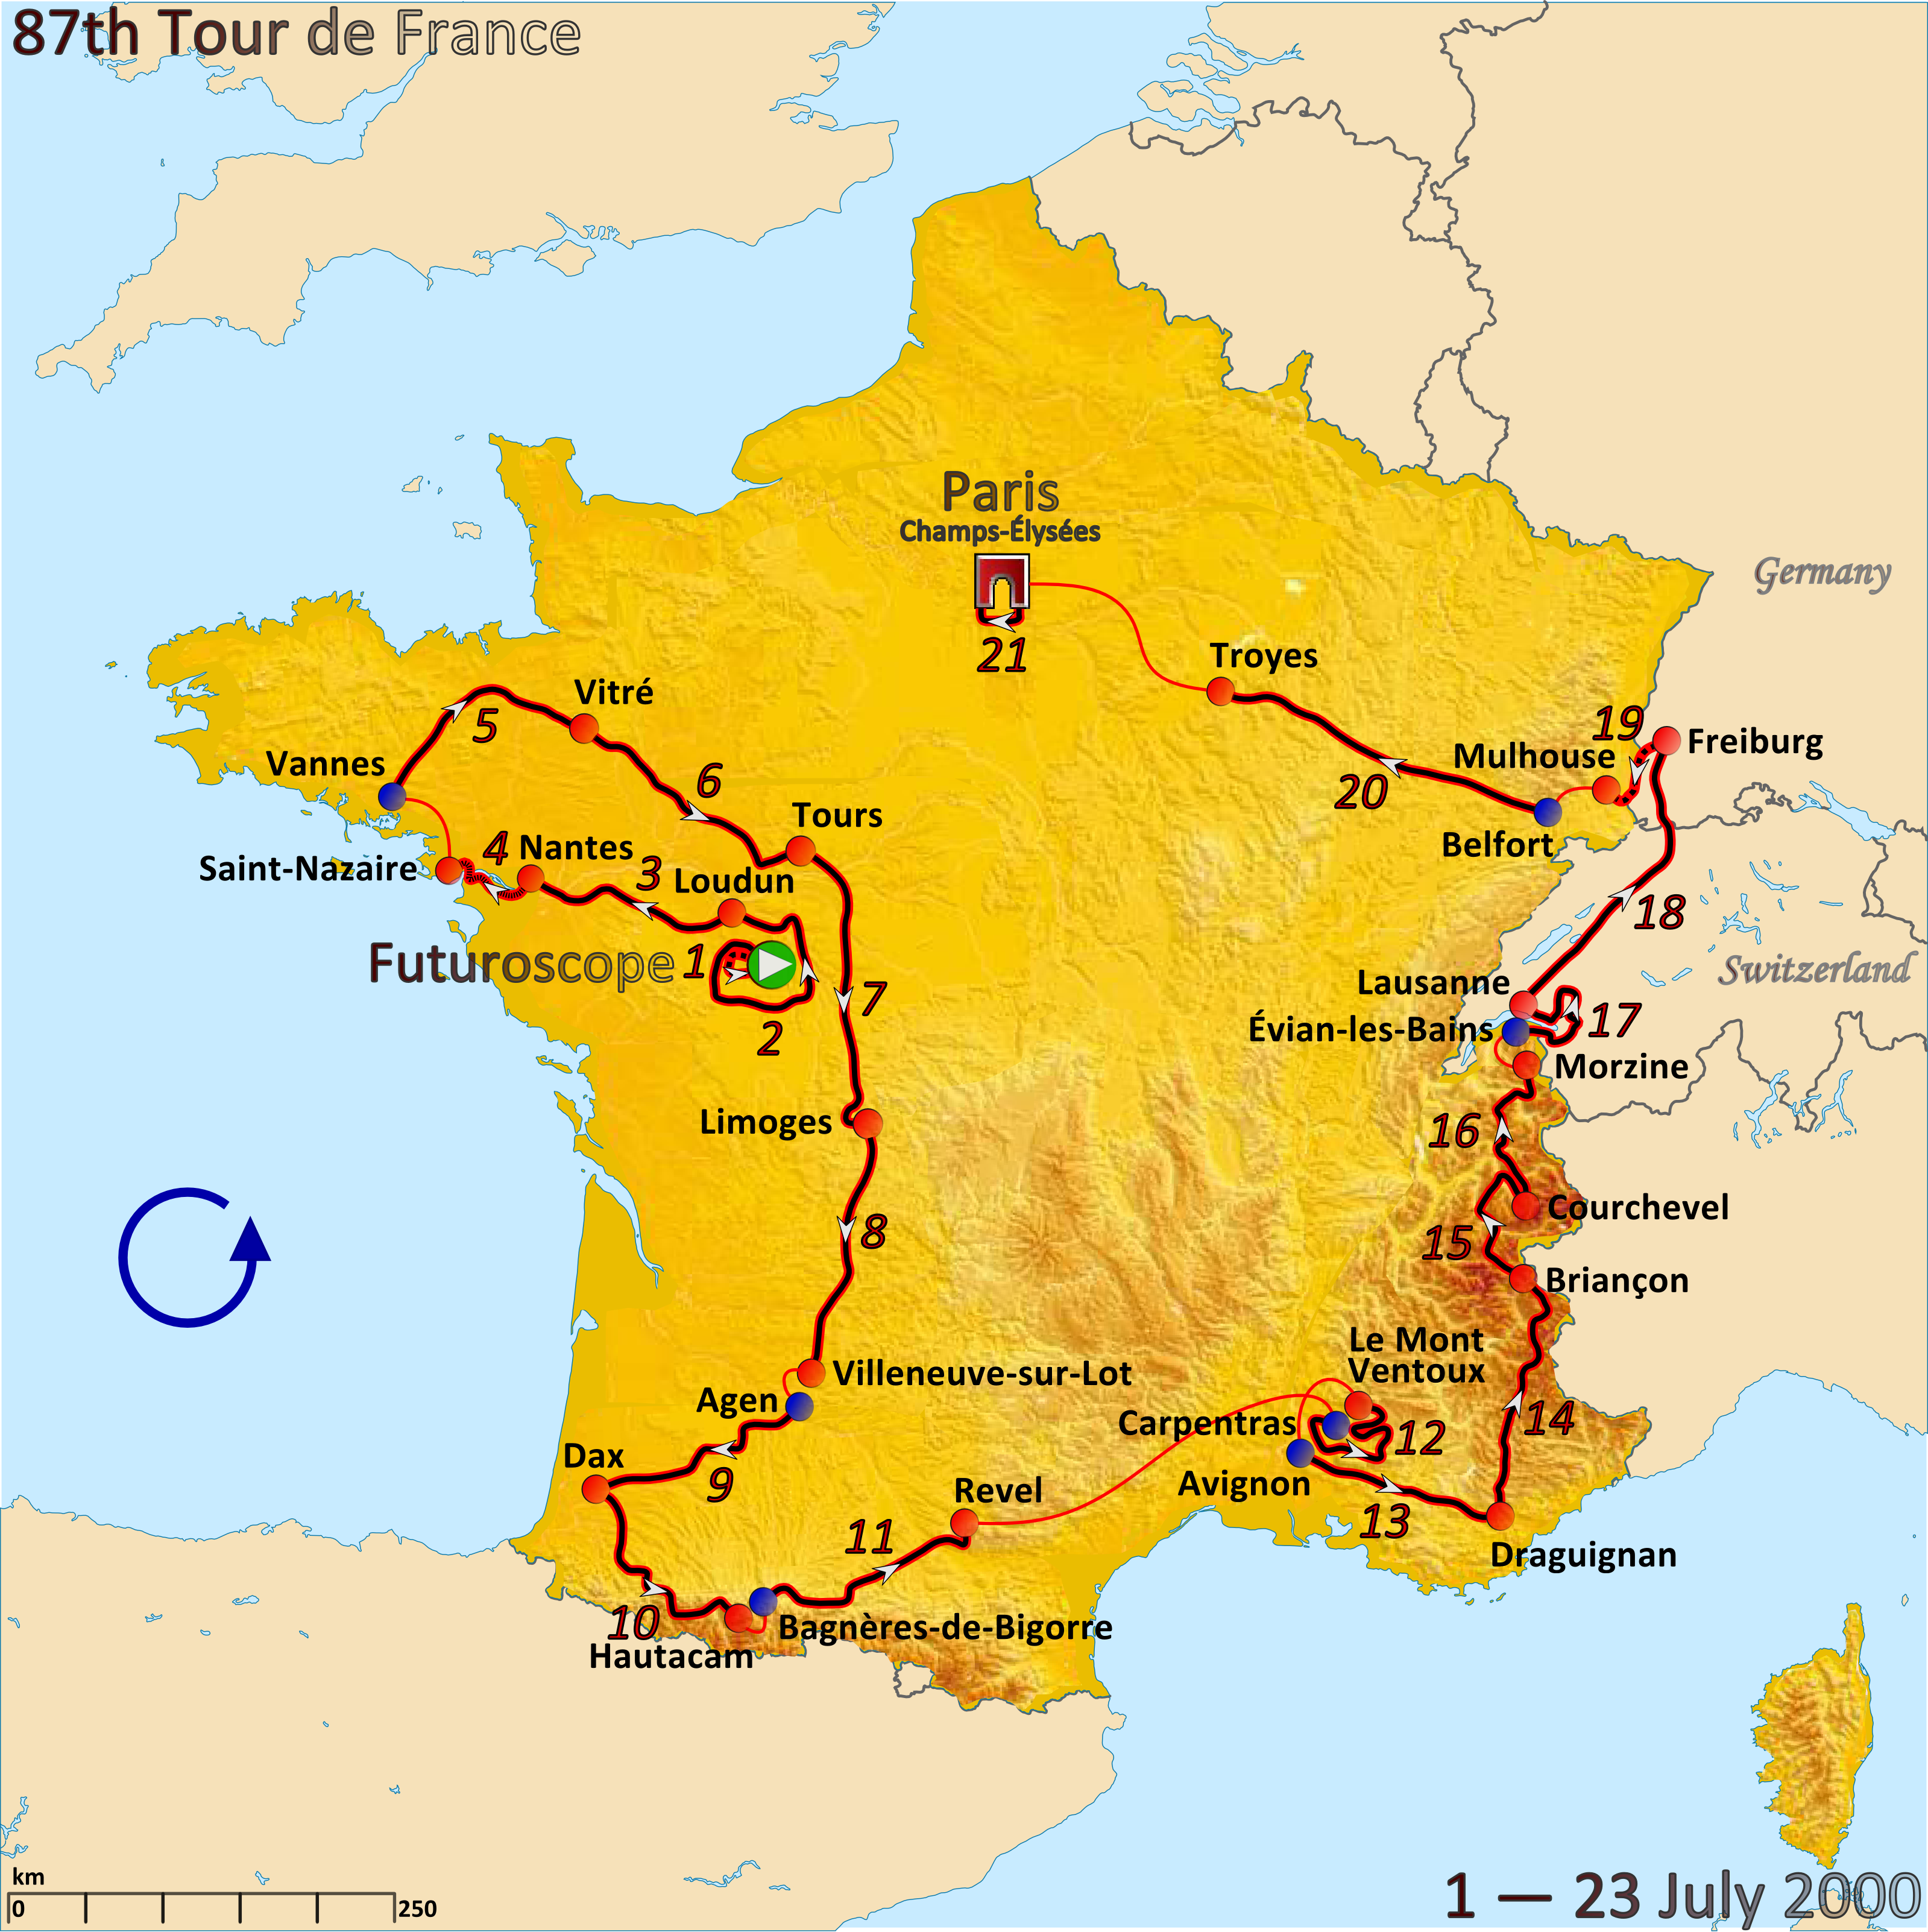 FileRoute of the 2000 Tour de Francepng Wikimedia Commons